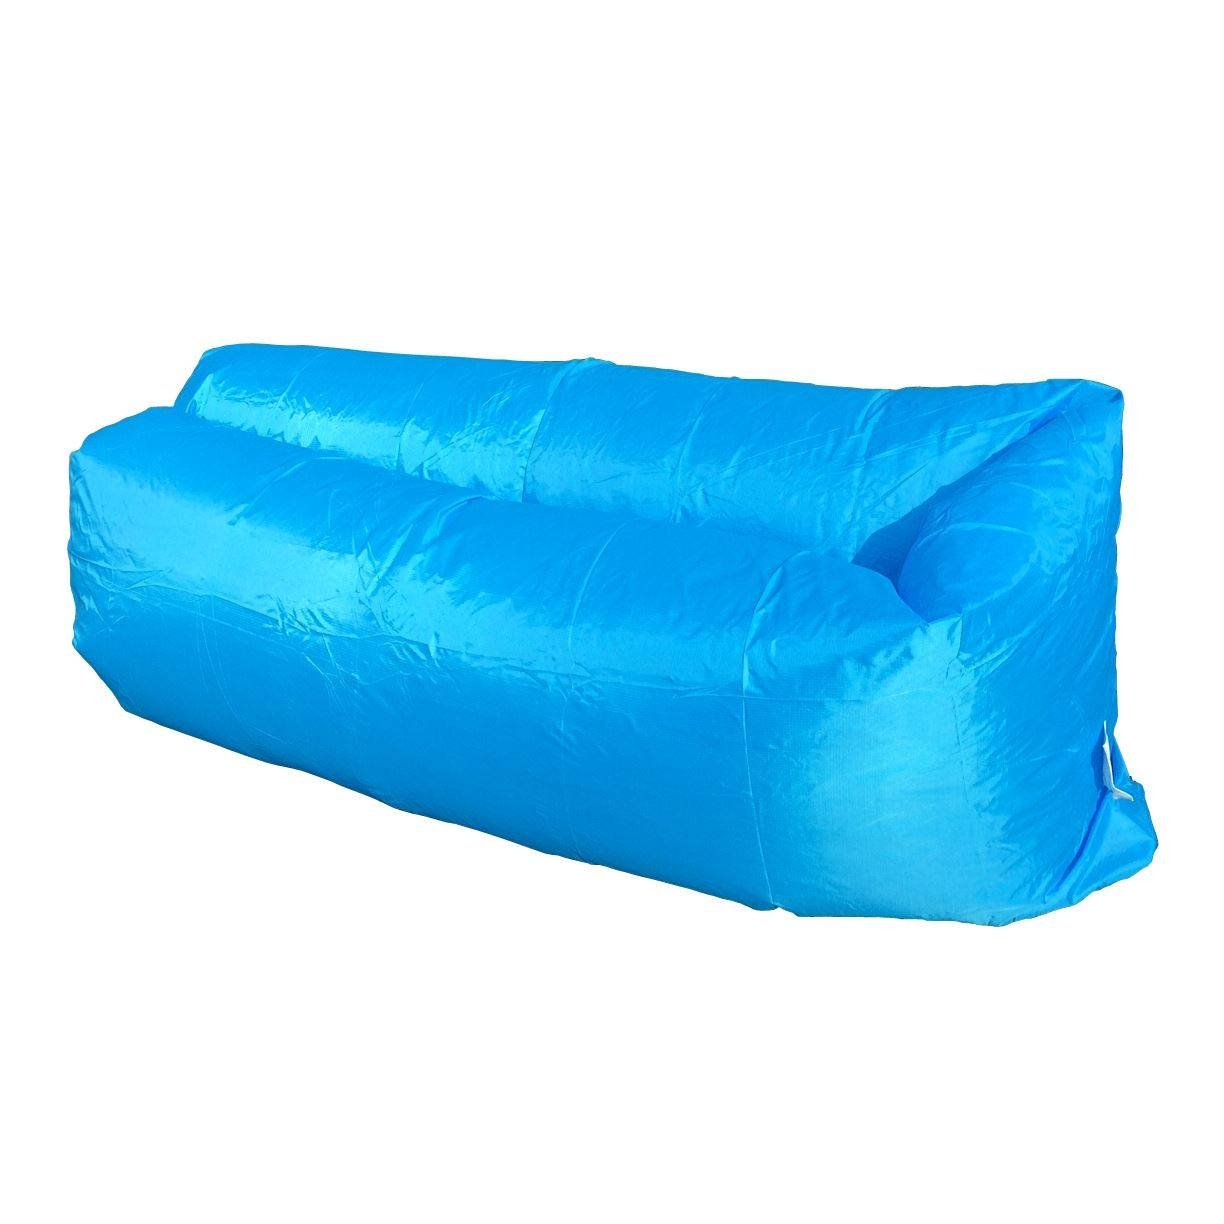 Inflatable Sofa Chair Air Bed Luxury Seat Camping Festival Holiday within Inflatable Sofas and Chairs (Image 7 of 15)